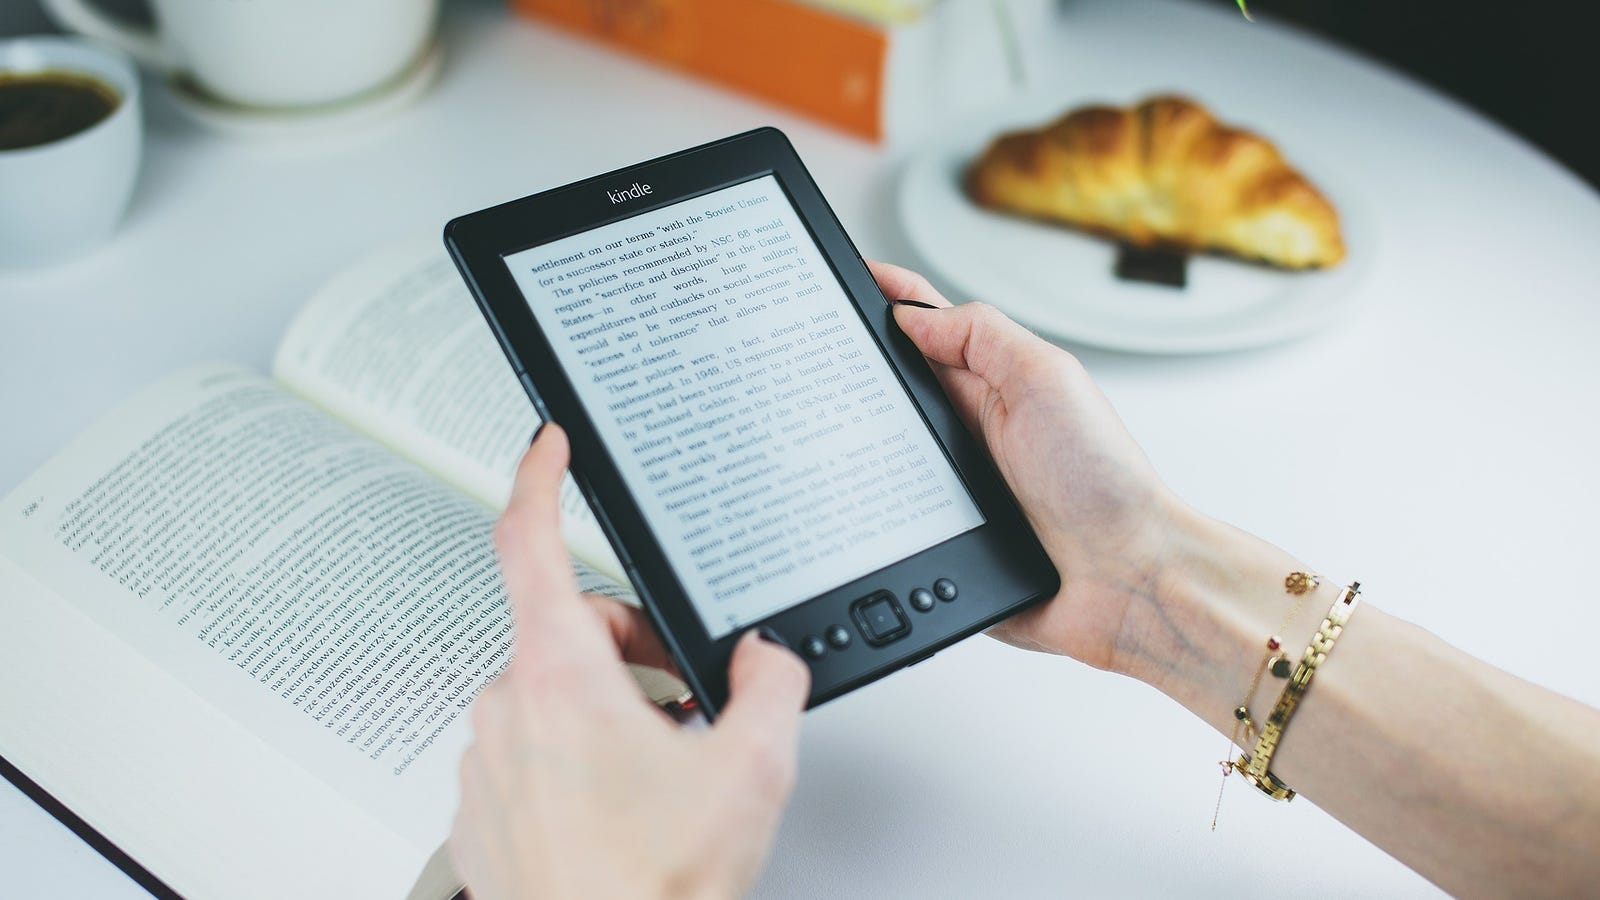 How to Keep Forever the Music, Movies or Ebooks You 'Buy' on Amazon